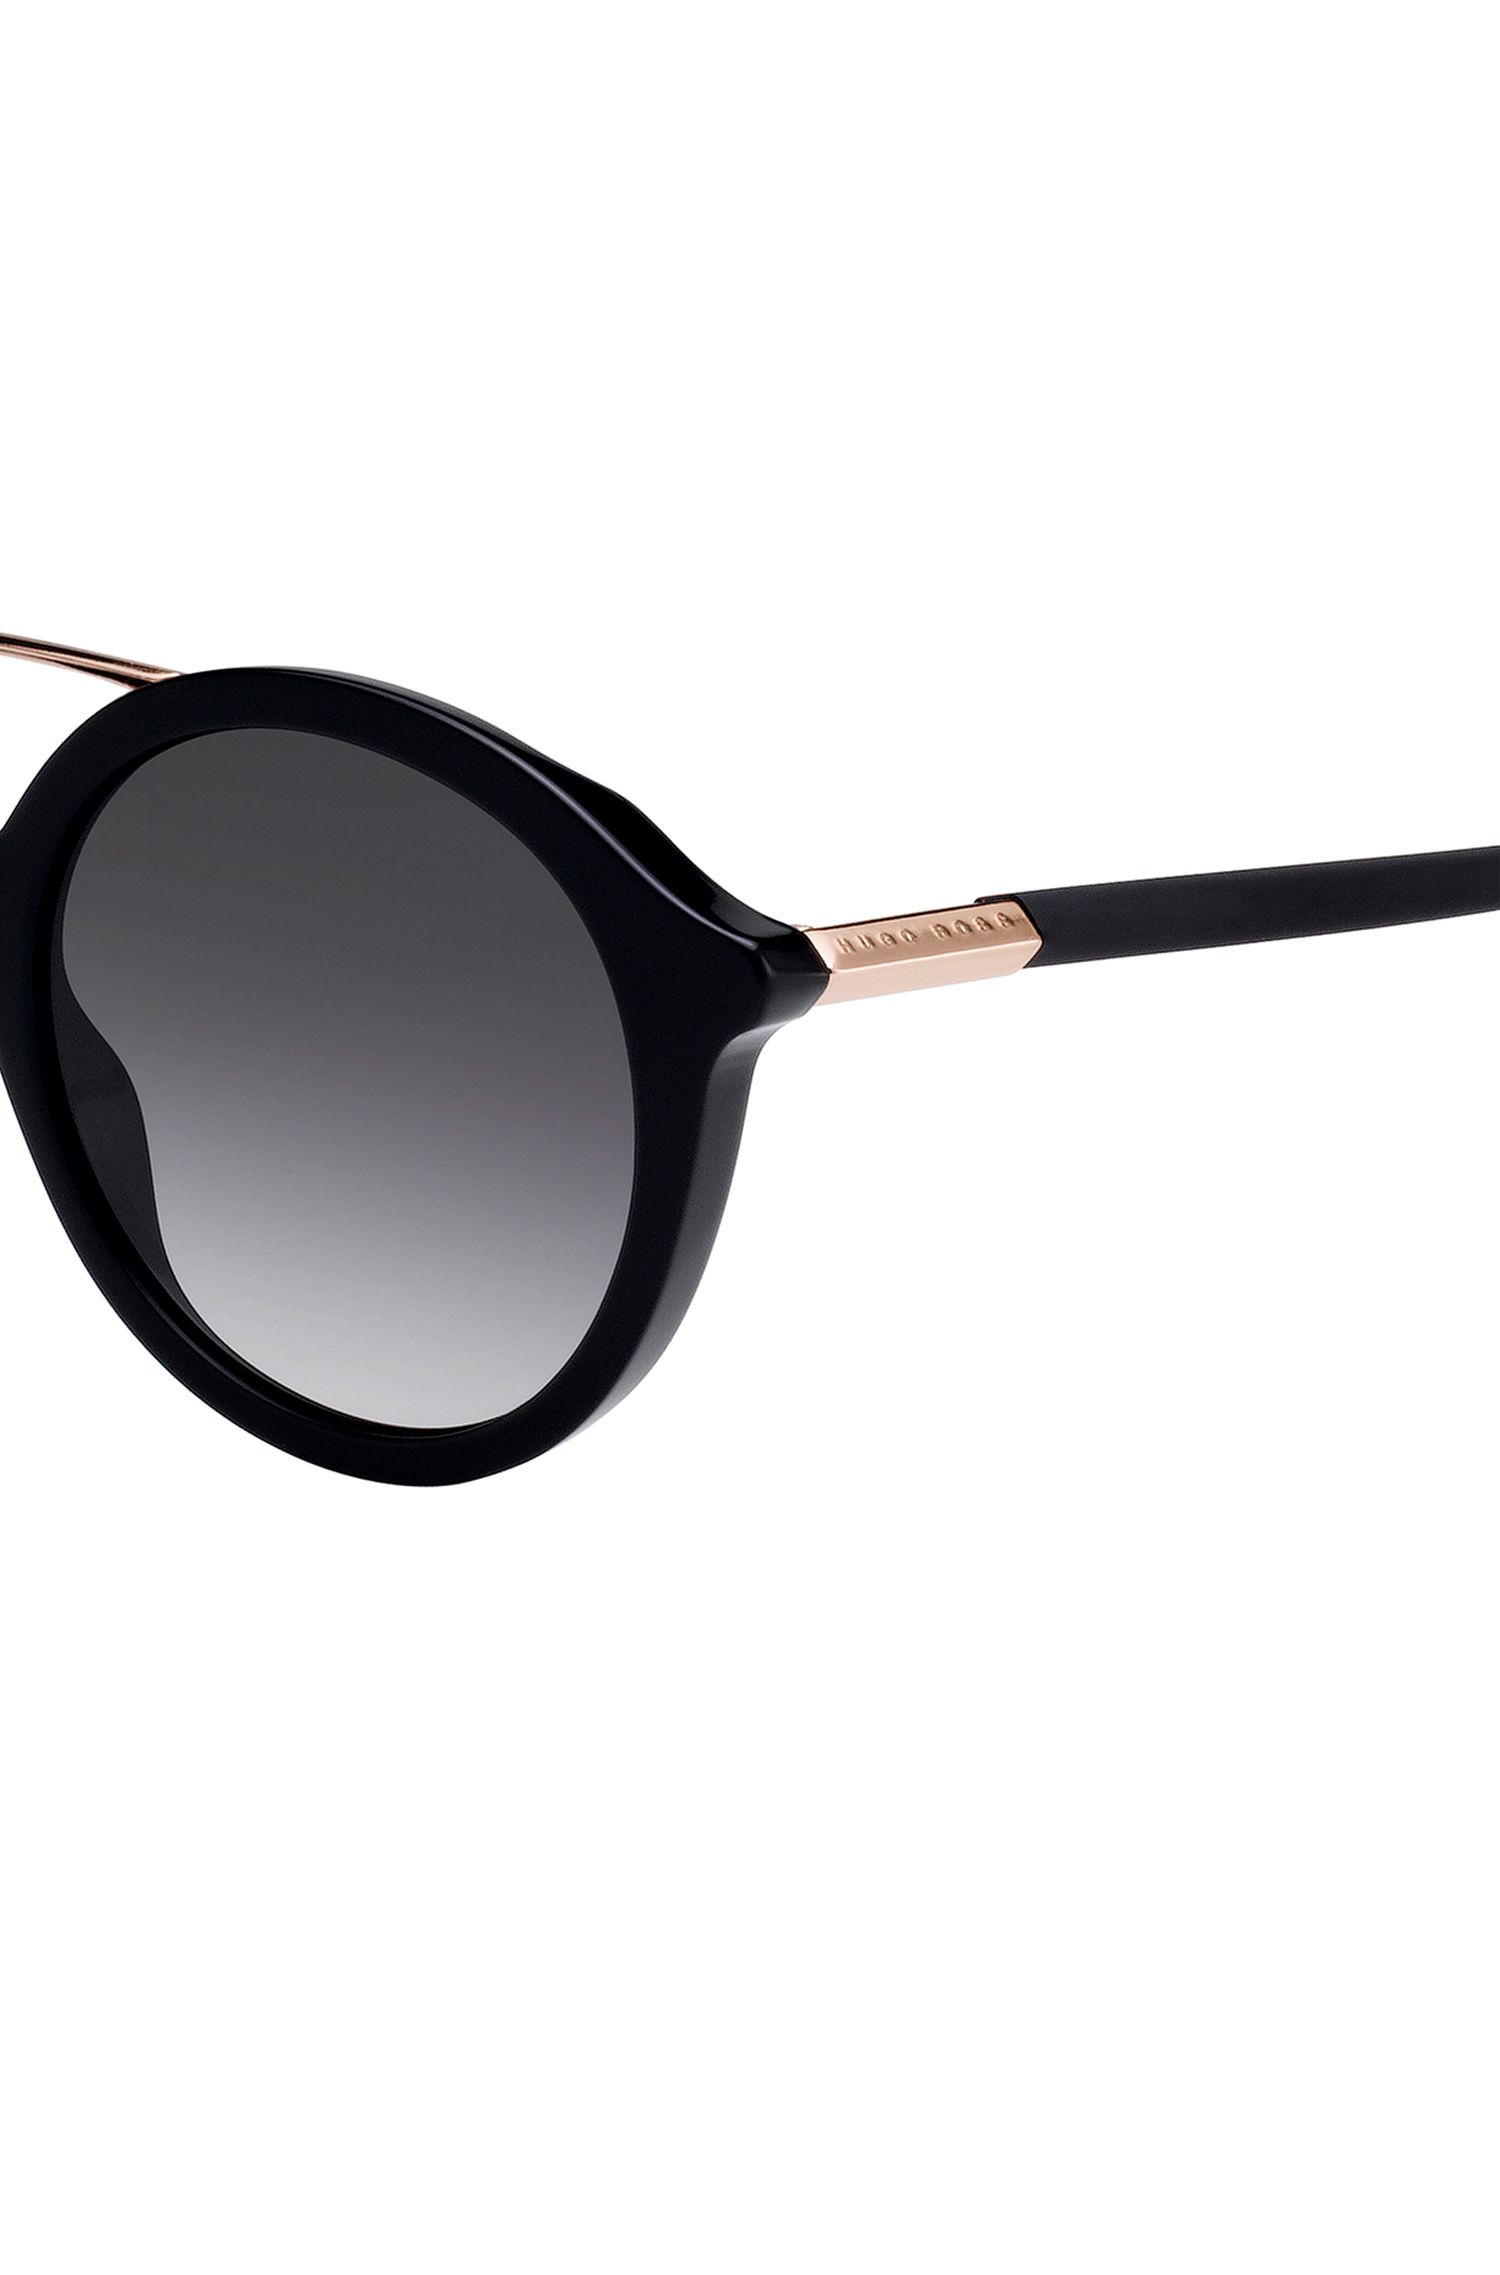 Acetate-frame sunglasses with double bridge